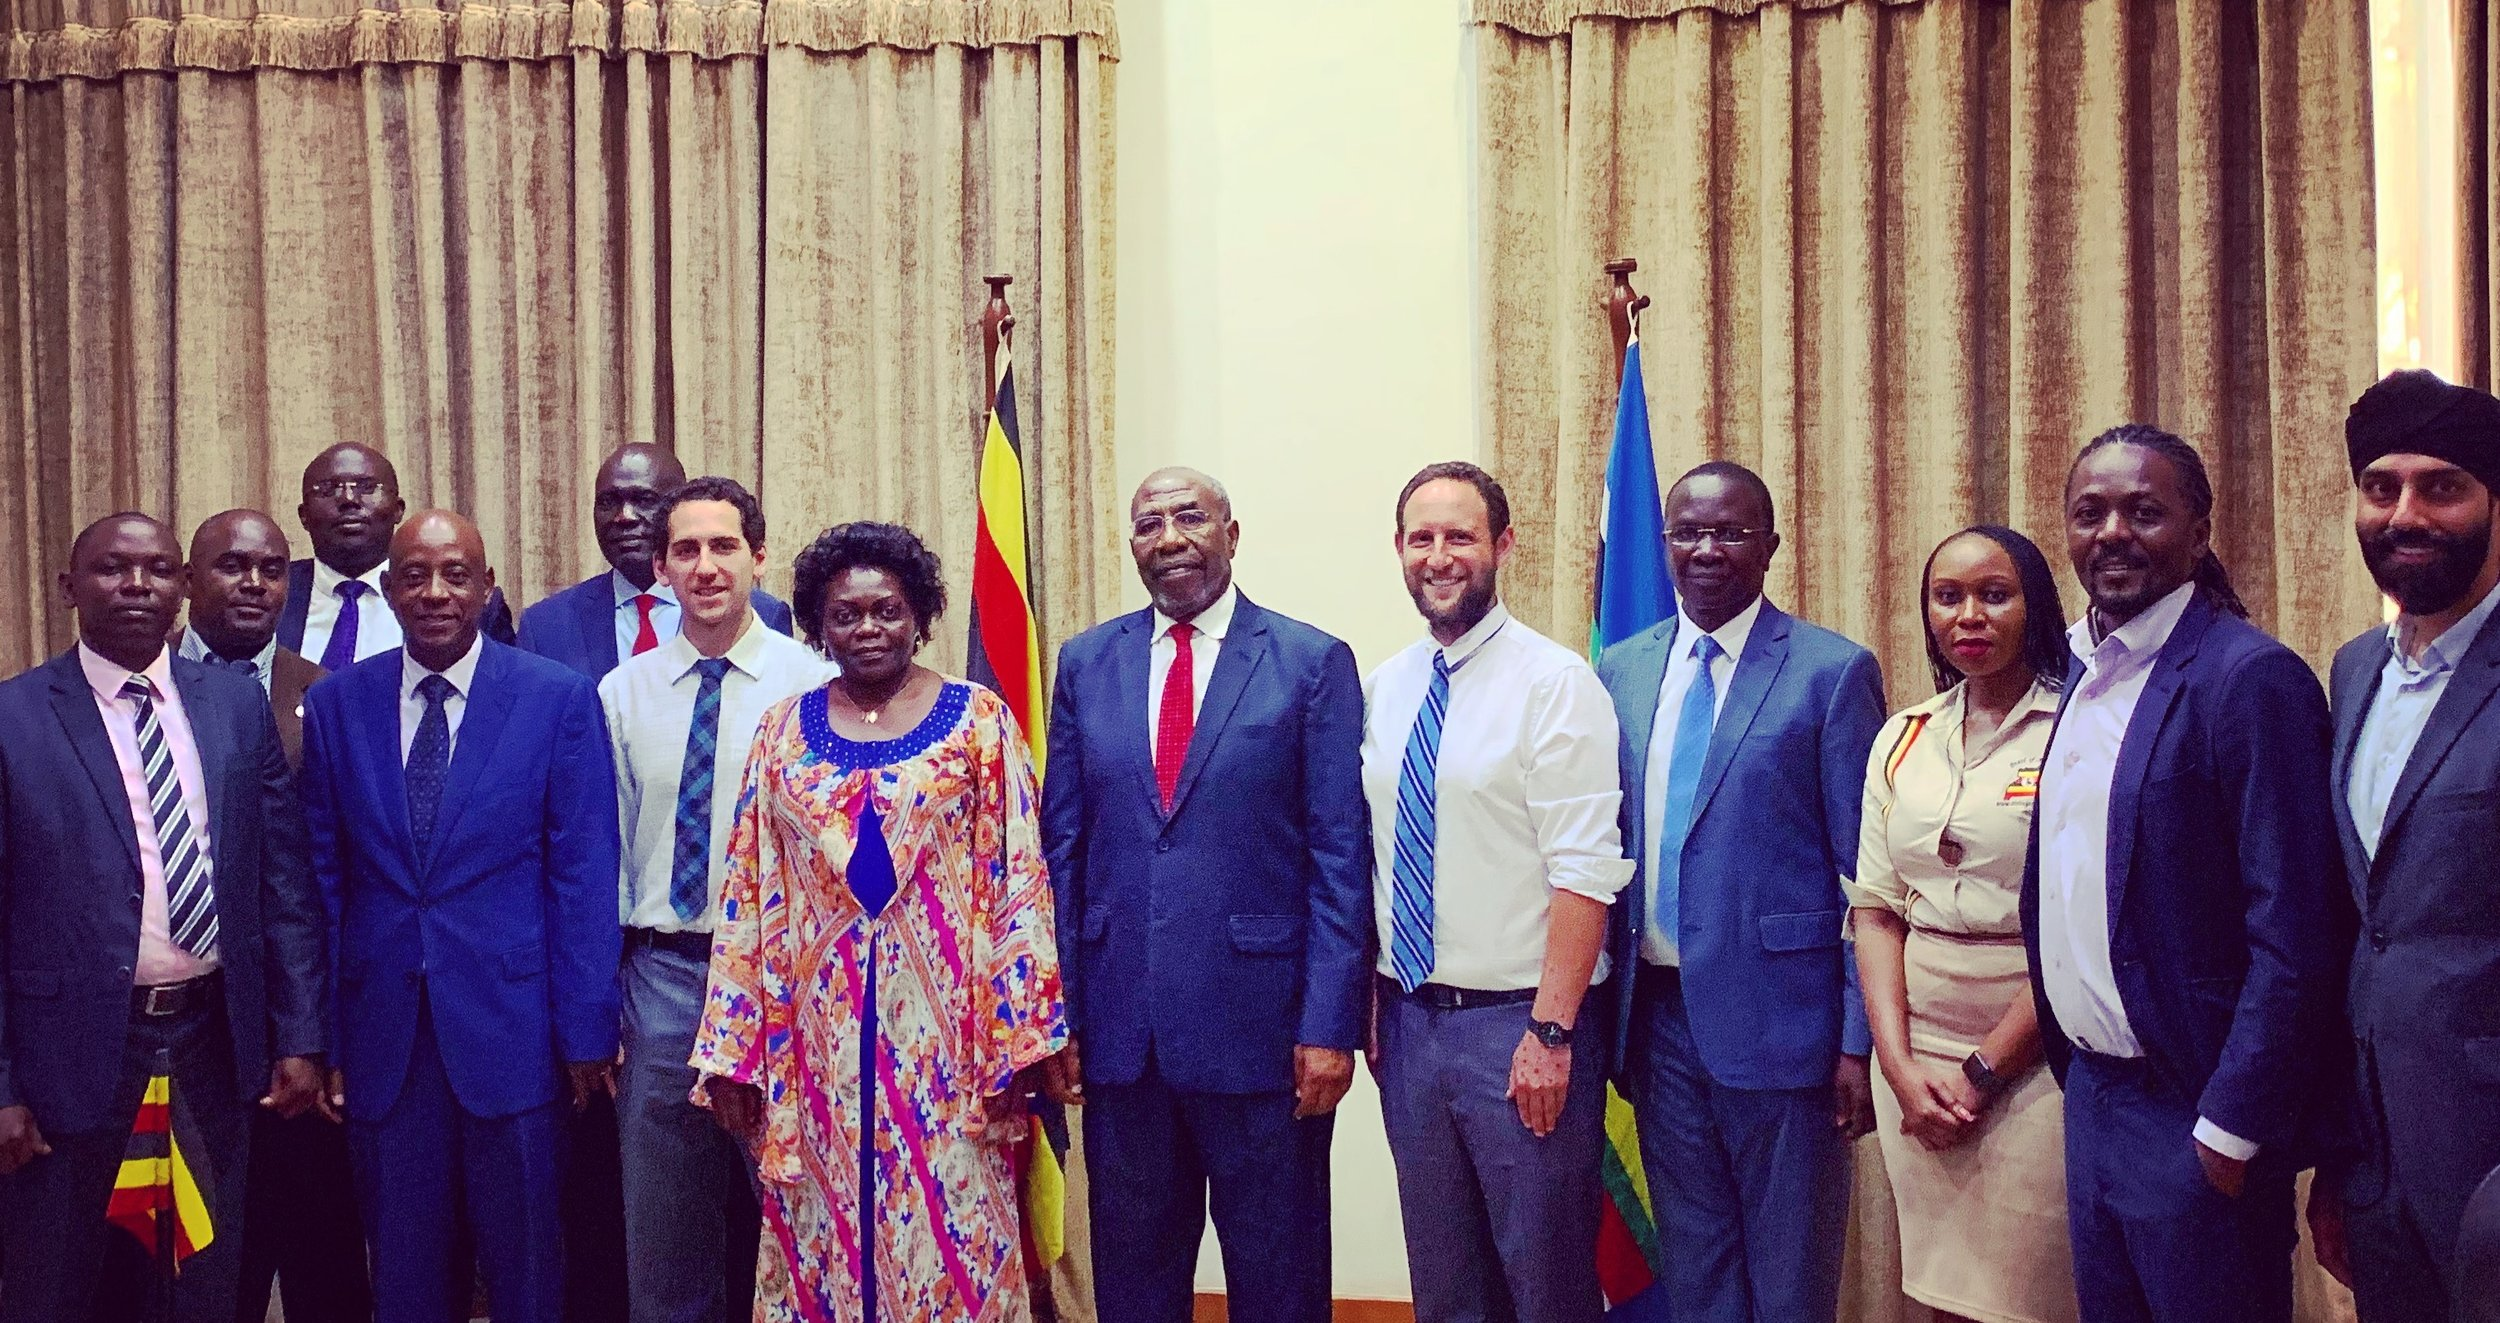 February 2019 meeting among the R.T. Honourable PM of Uganda, United in Film, Reel Impact Foundation, Bridge to Health, the Ministry of Health, the Ministry of Education, the Uganda Tourism Board, and the Ugandan Communications Commission.